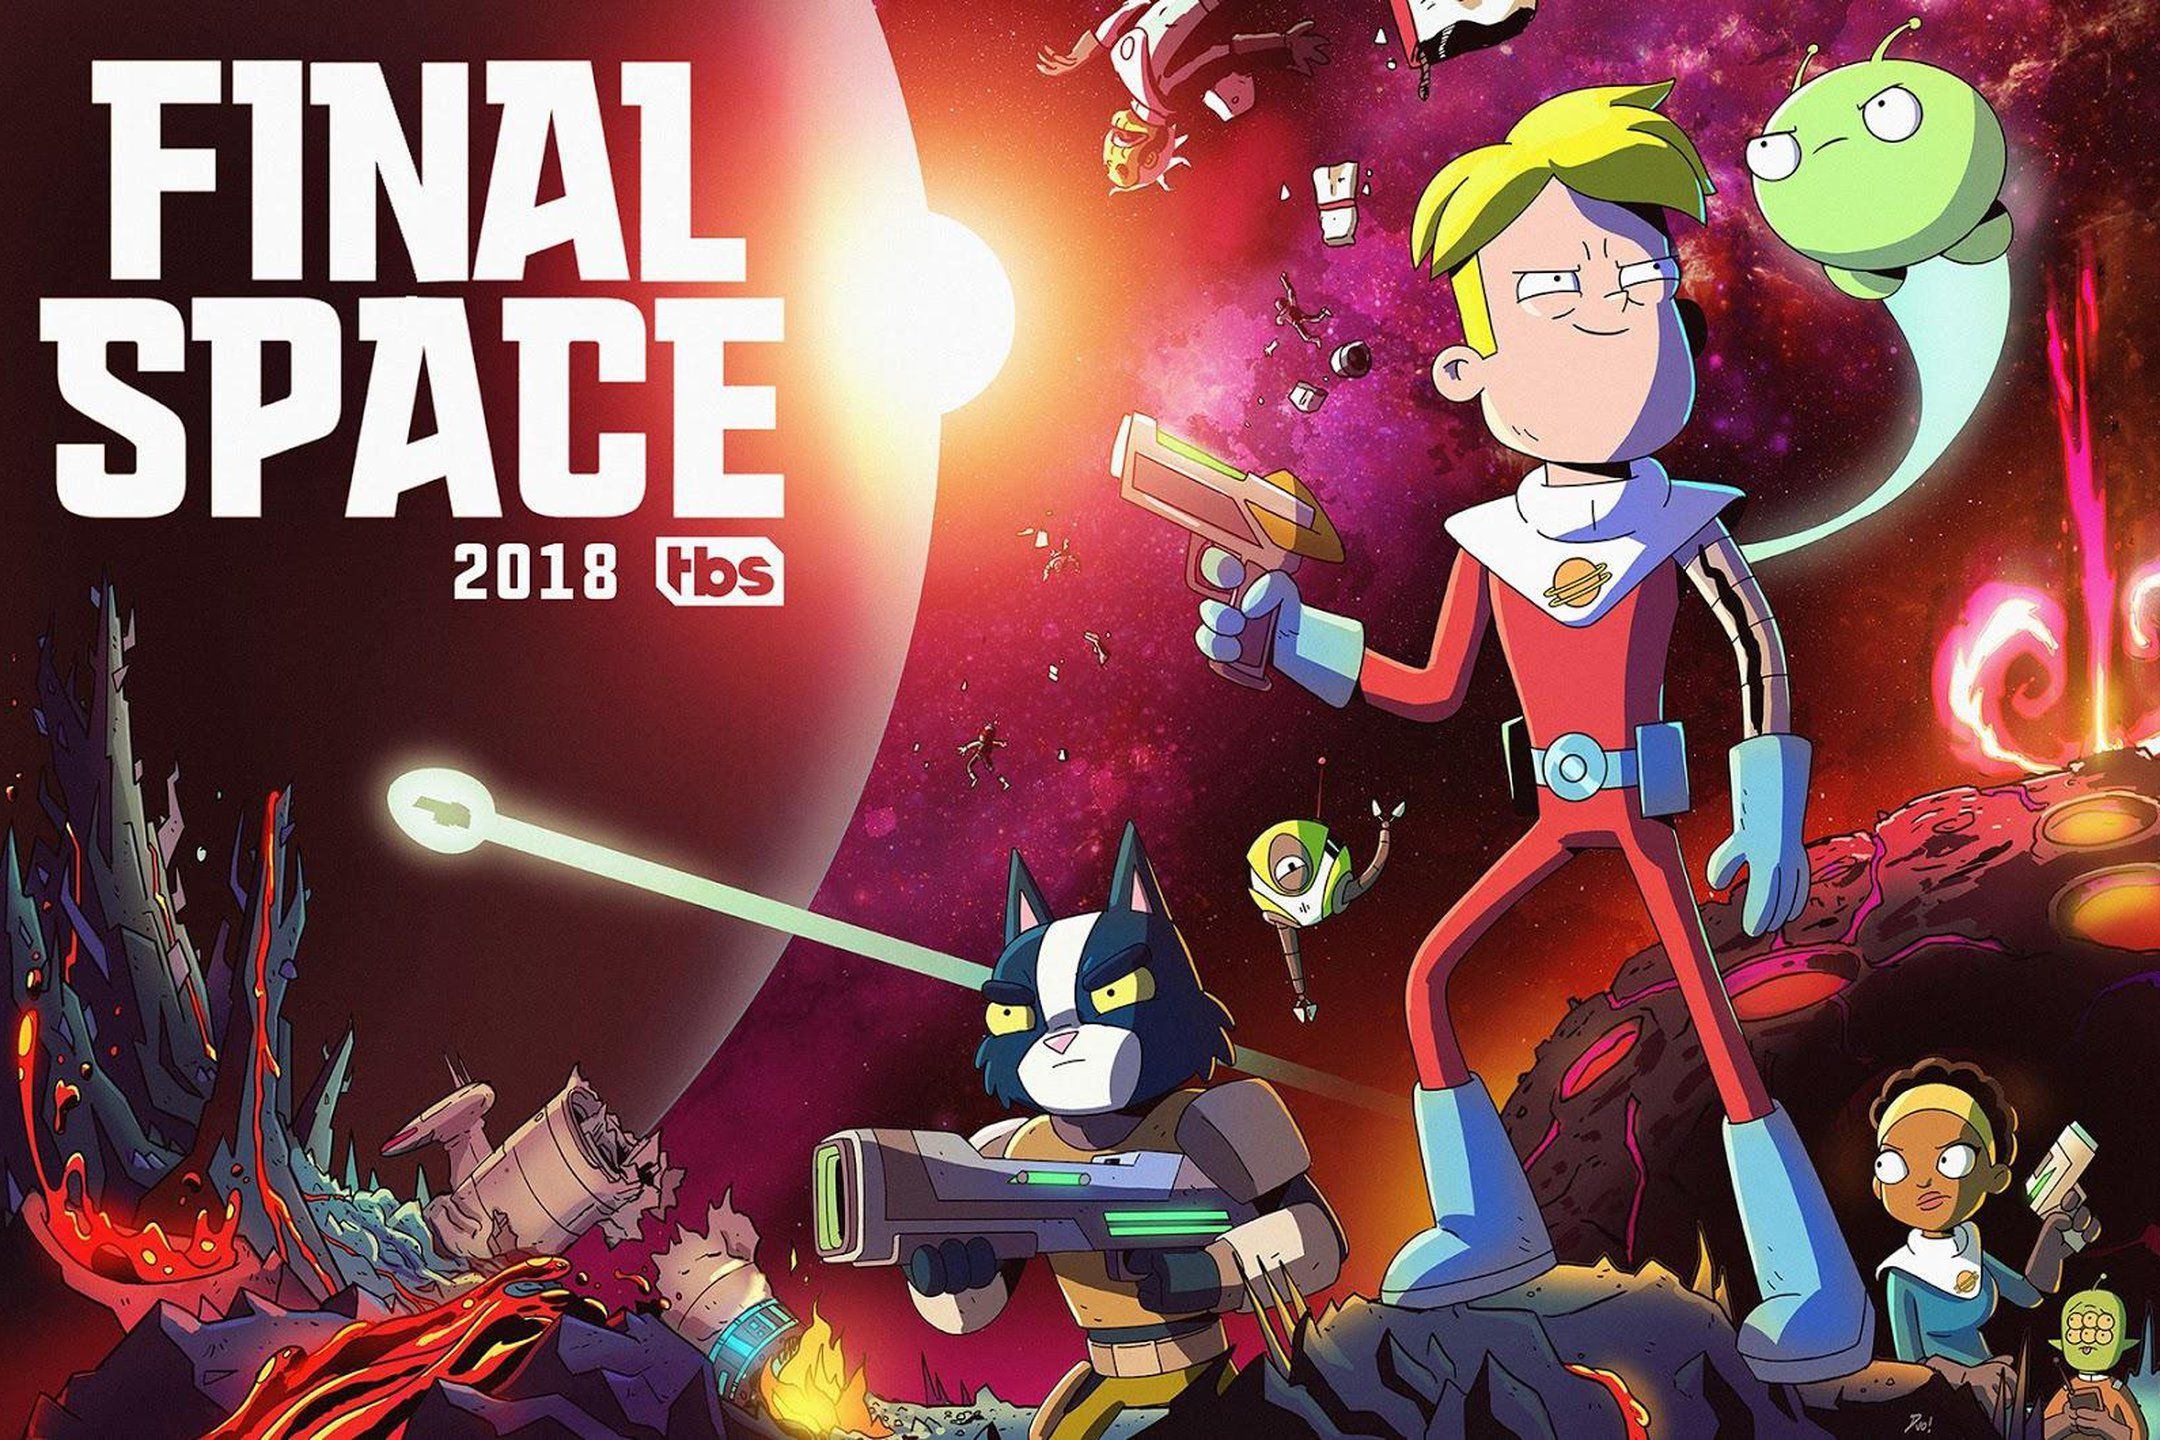 Full hd tbs final space chapter five wallpaper anime - Final space wallpaper ...